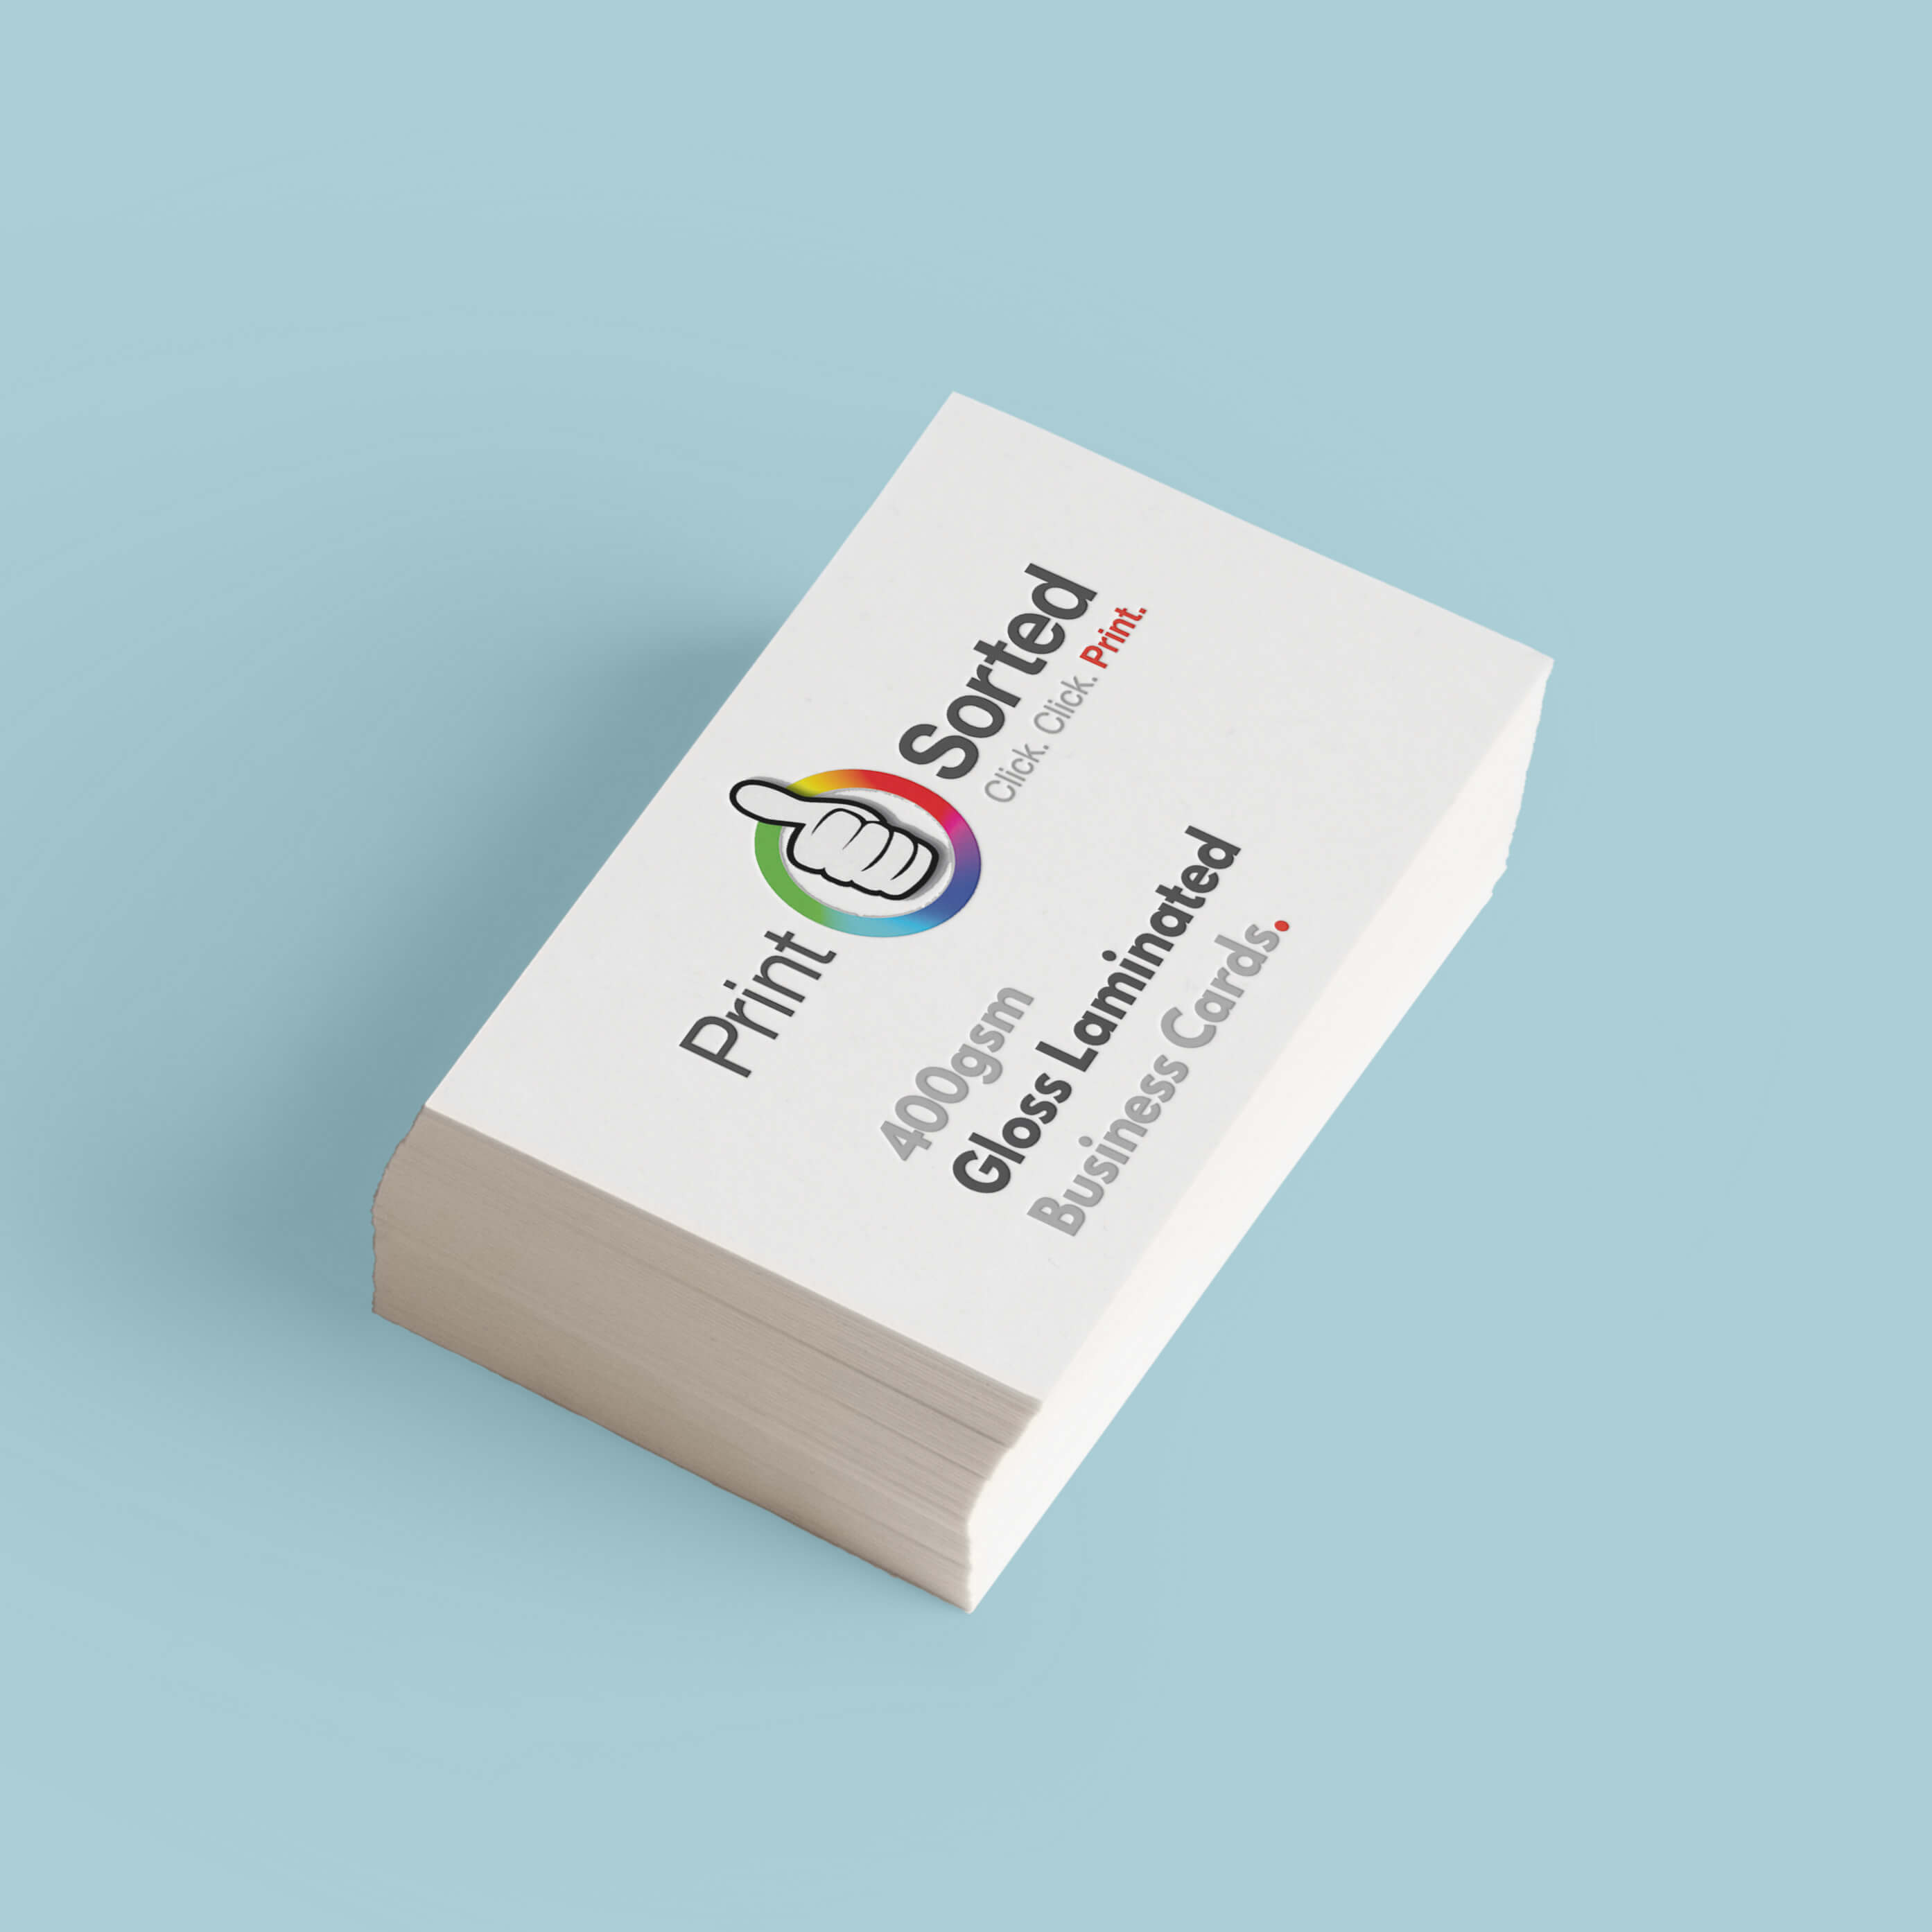 400gsm gloss laminated business cards all your print sorted 400gsm gloss laminated business cards colourmoves